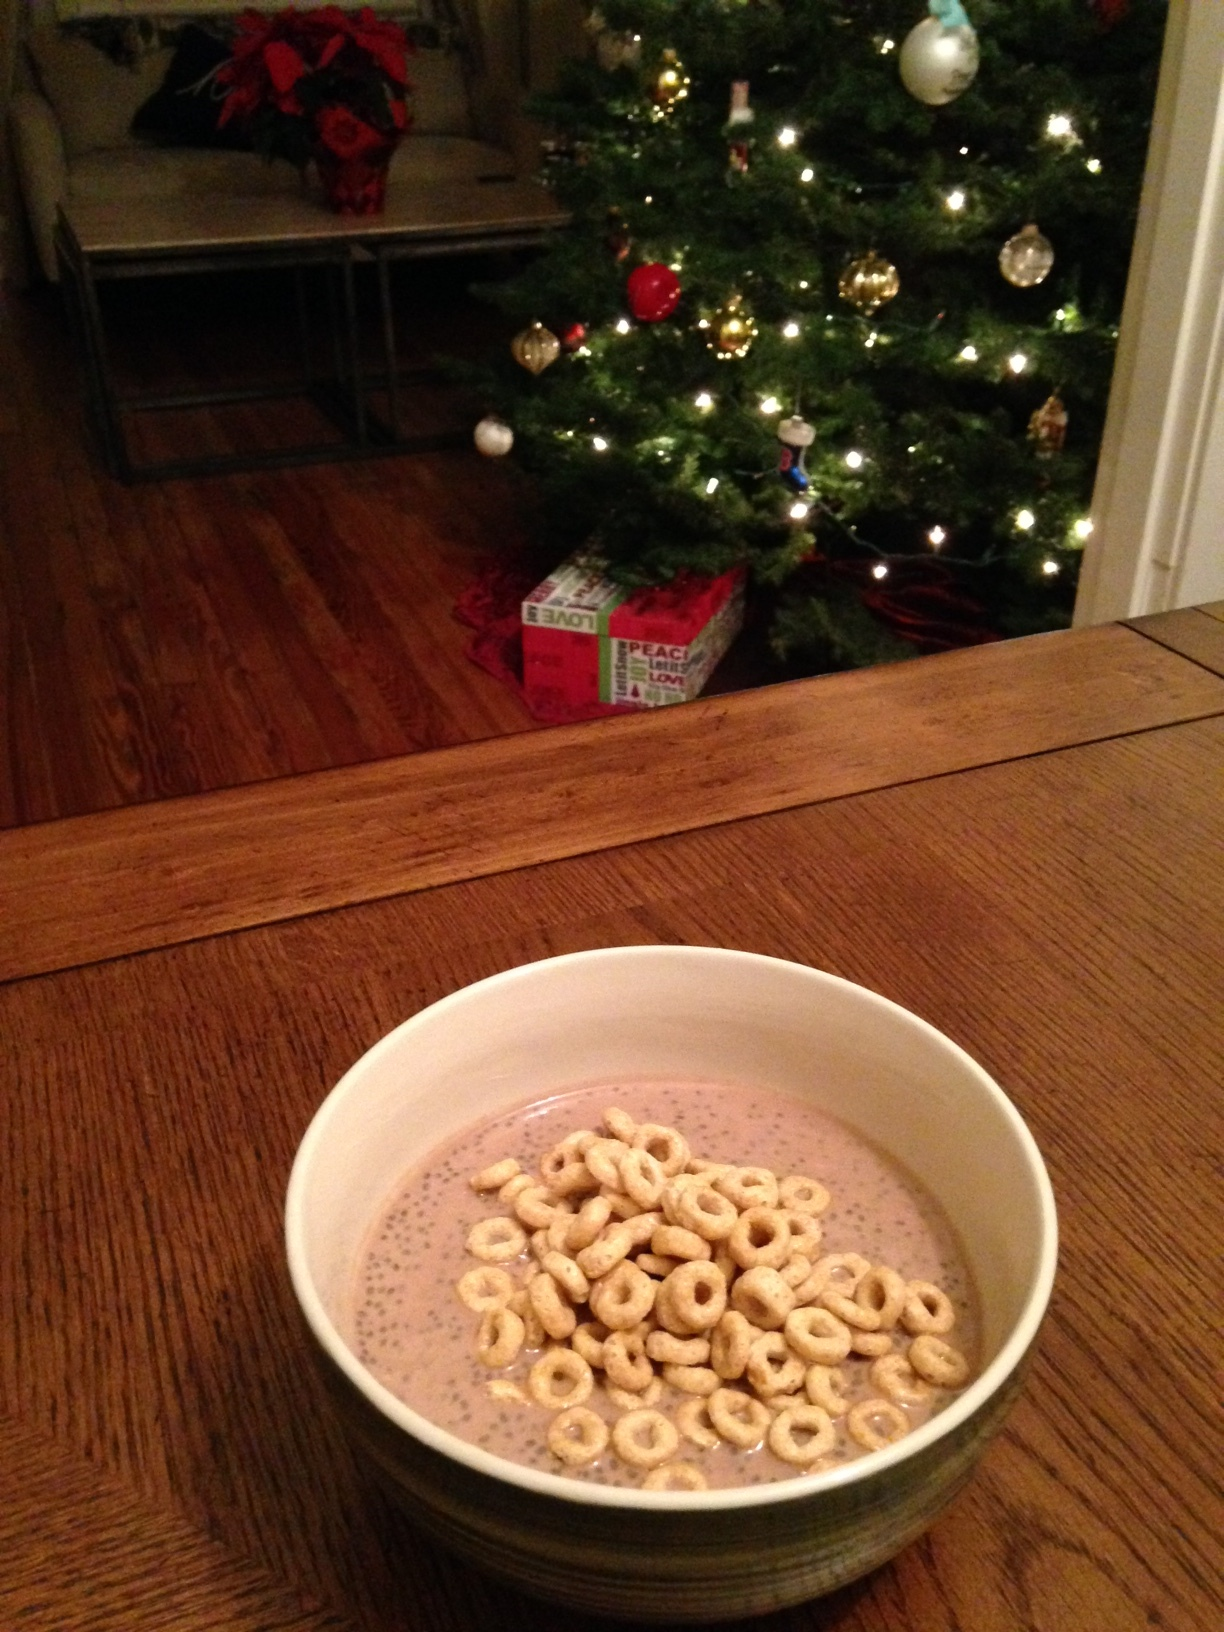 Nothing like a bowl of Chia Pudding and sitting by the glow of a Christmas tree!